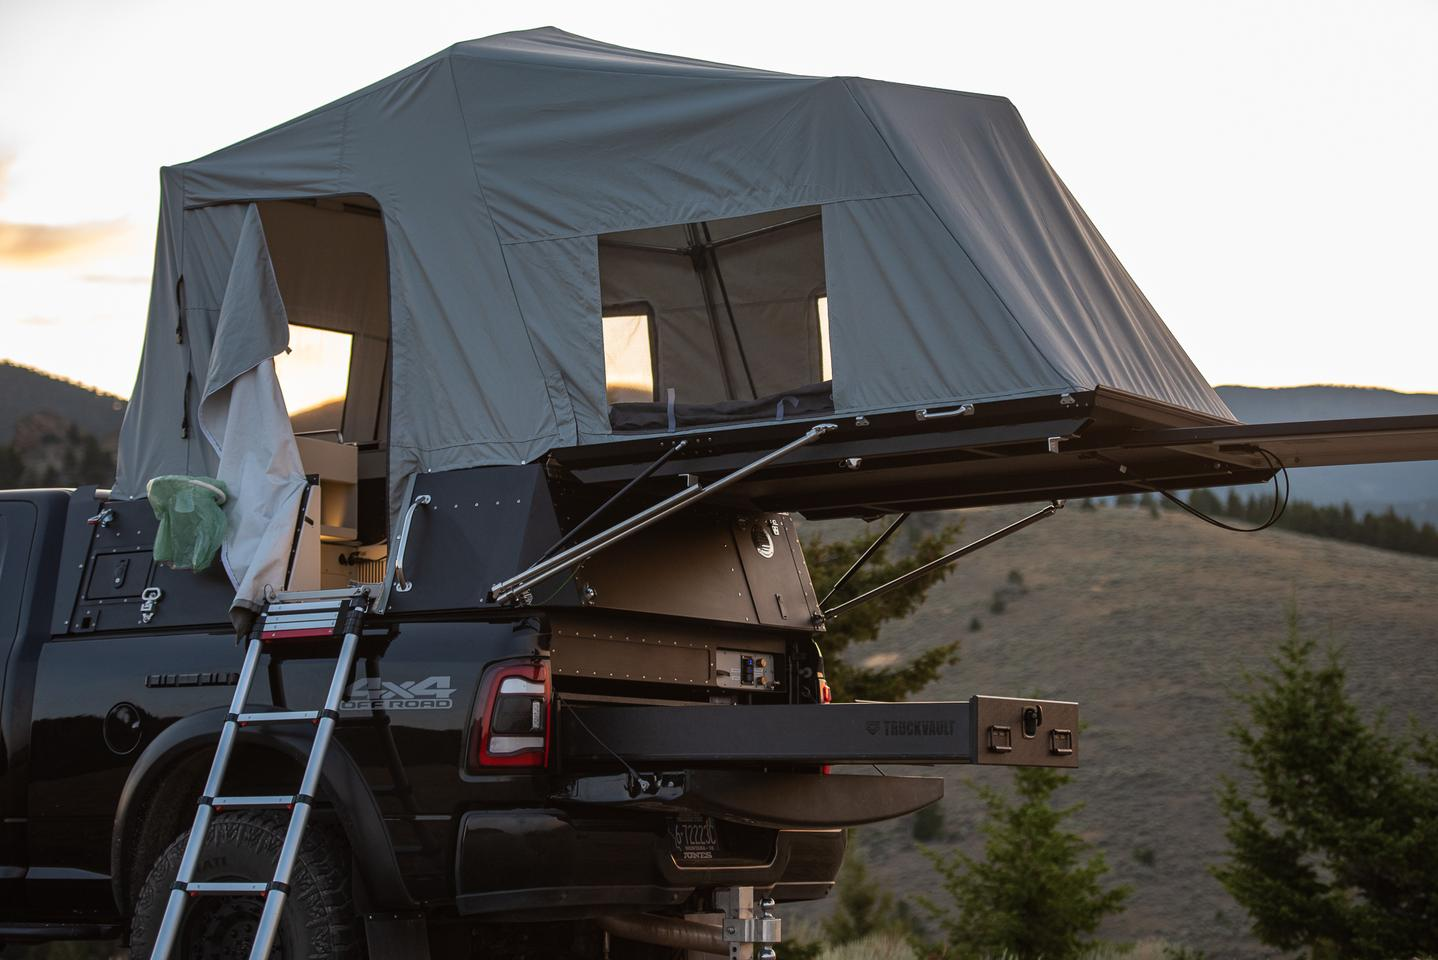 Skinny Guy introduced its camper at the recent Overland Expo Mountain West show in Colorado